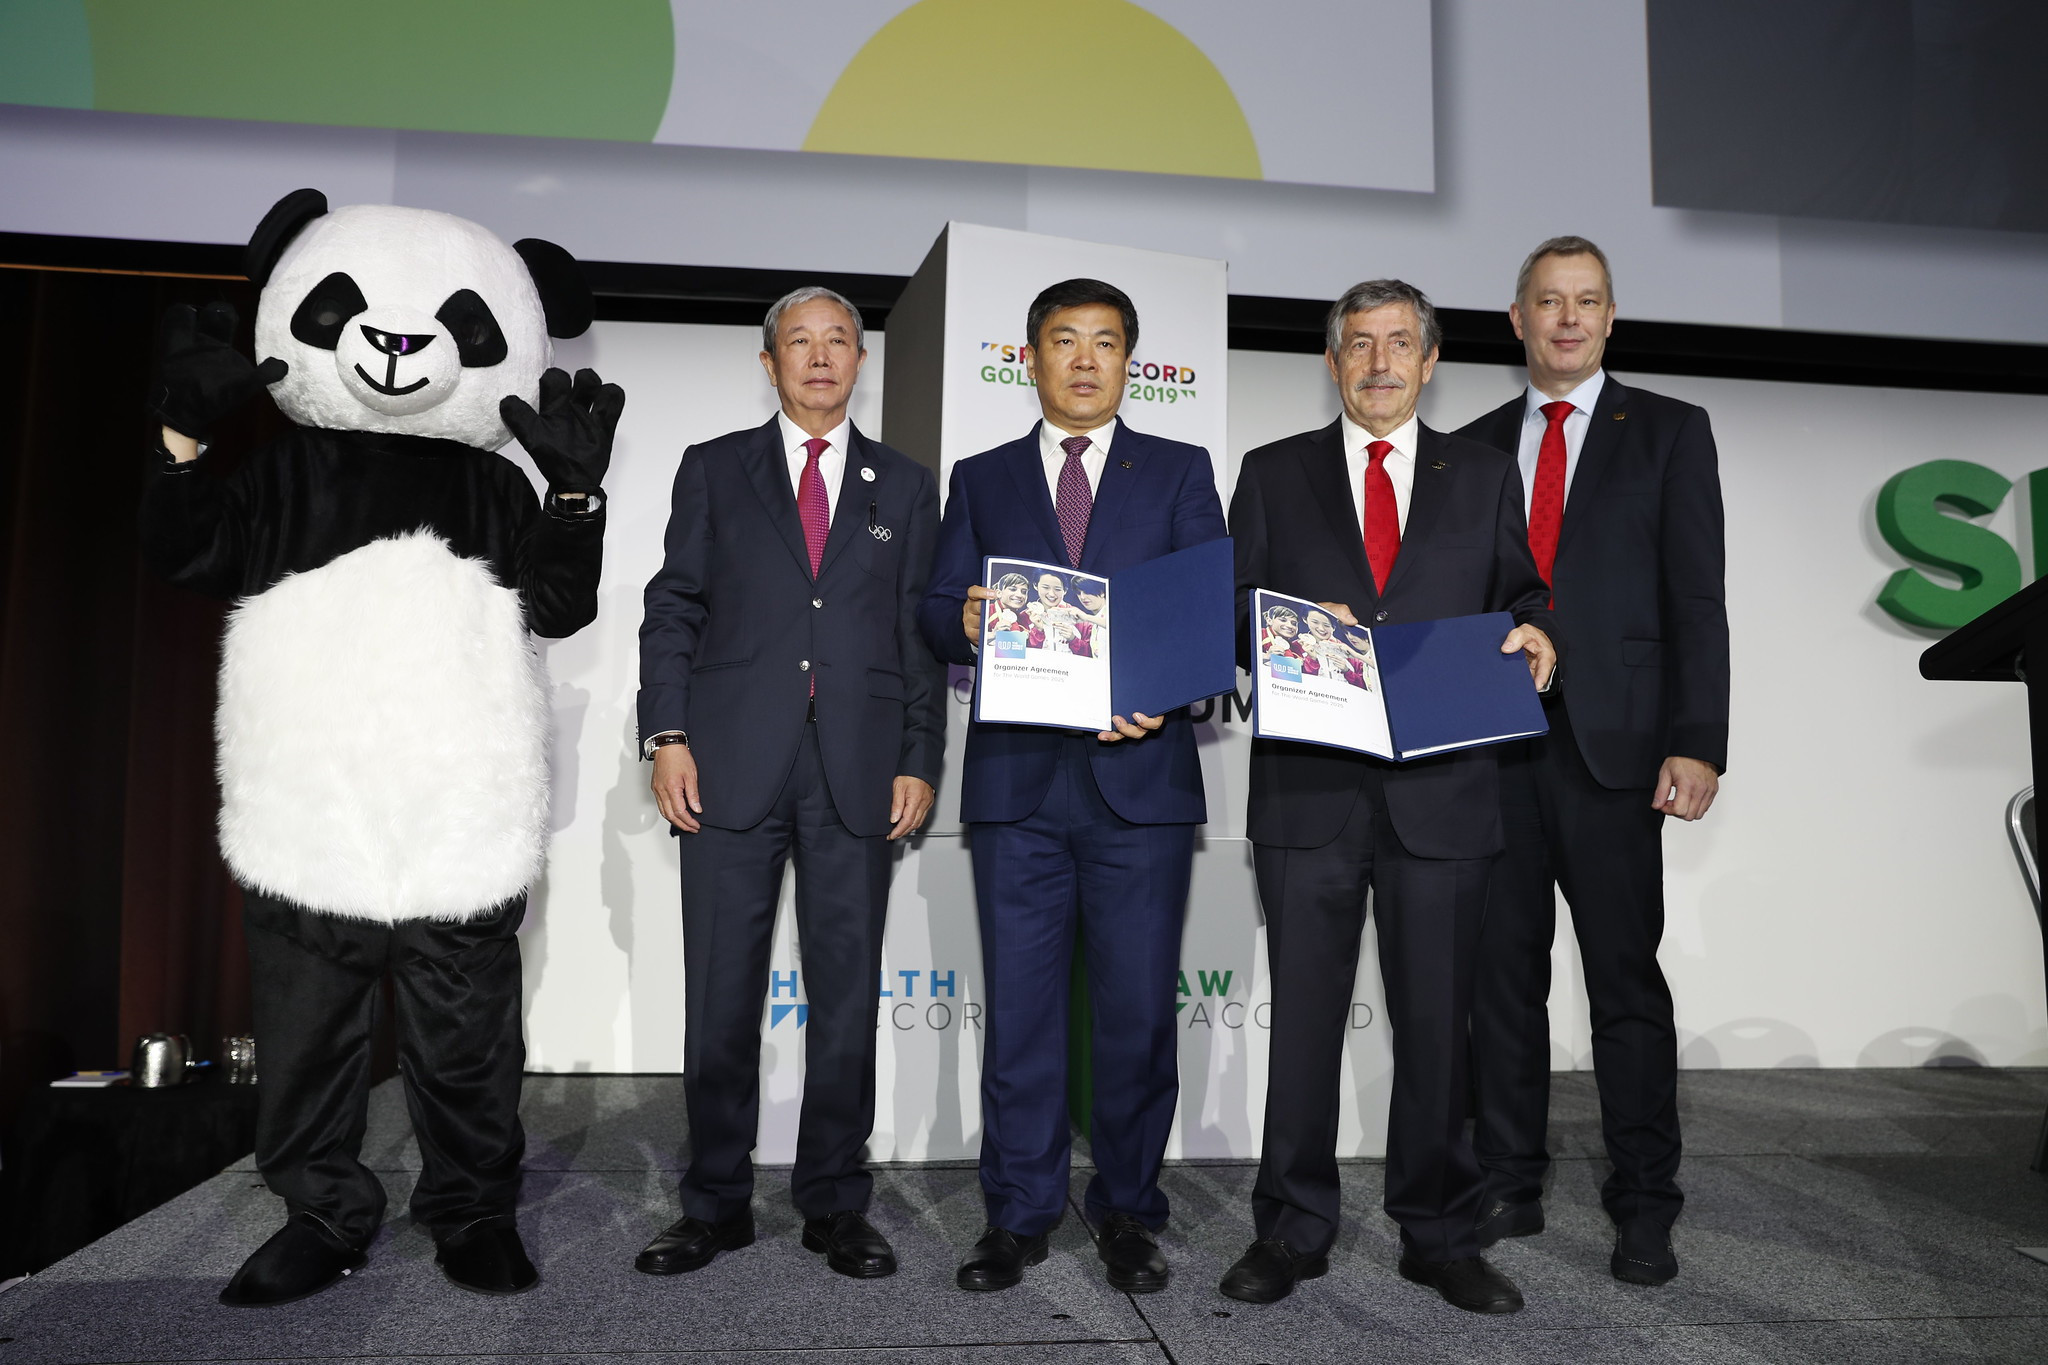 World Games award to Chengdu among highlights on penultimate day of SportAccord Summit